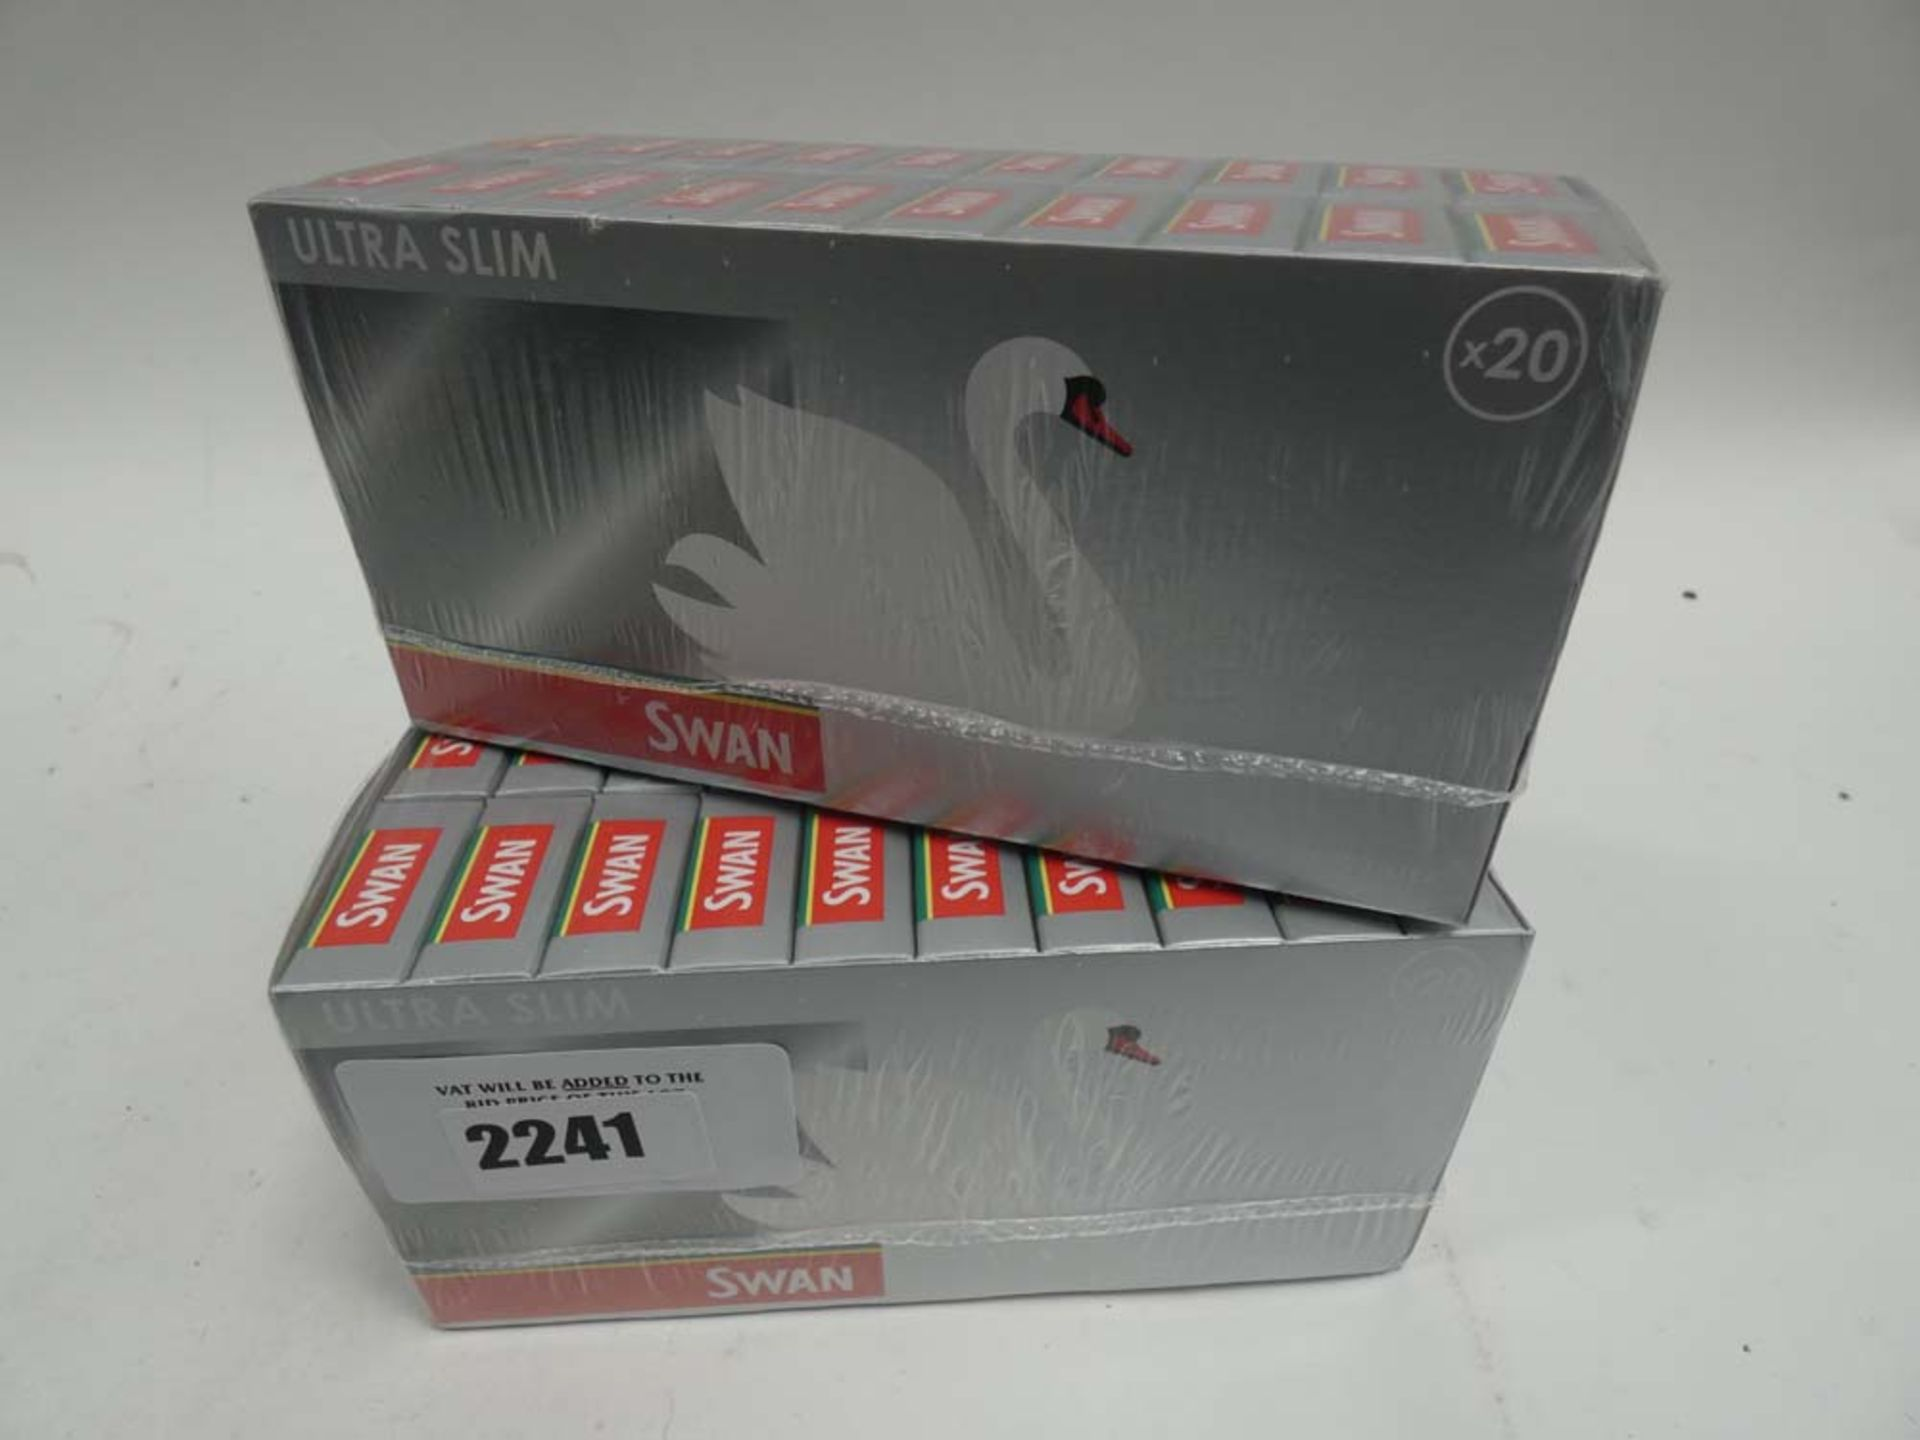 2x boxes of Swan Ultra Slim filter tips